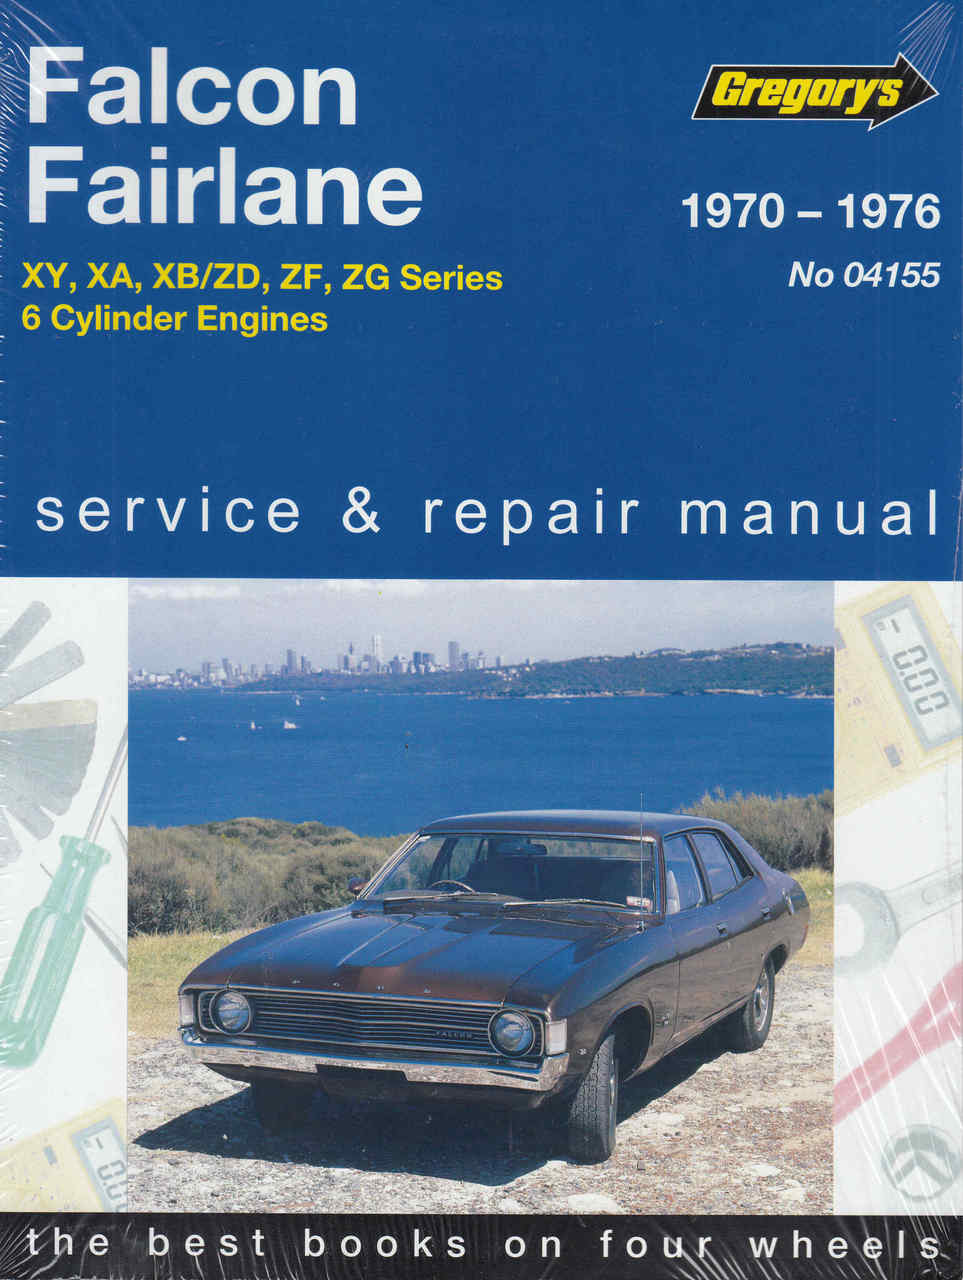 Ford Falcon, Fairlane 6 Cylinder Engines 1970 - 1976 Workshop Manual -  front ...